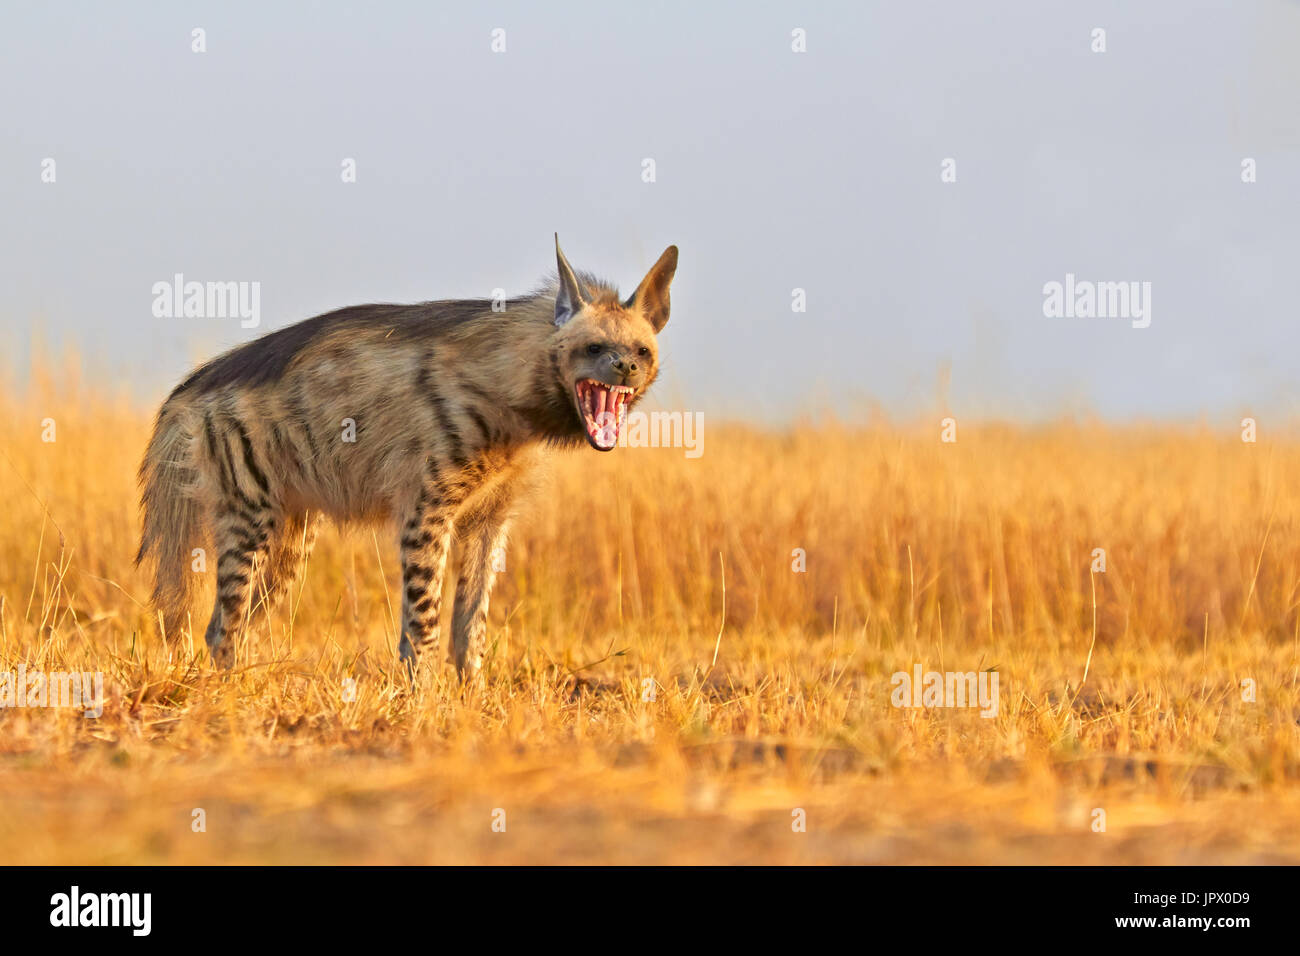 Striped Hyena in the savannah - Blackbuck NP India - Stock Image